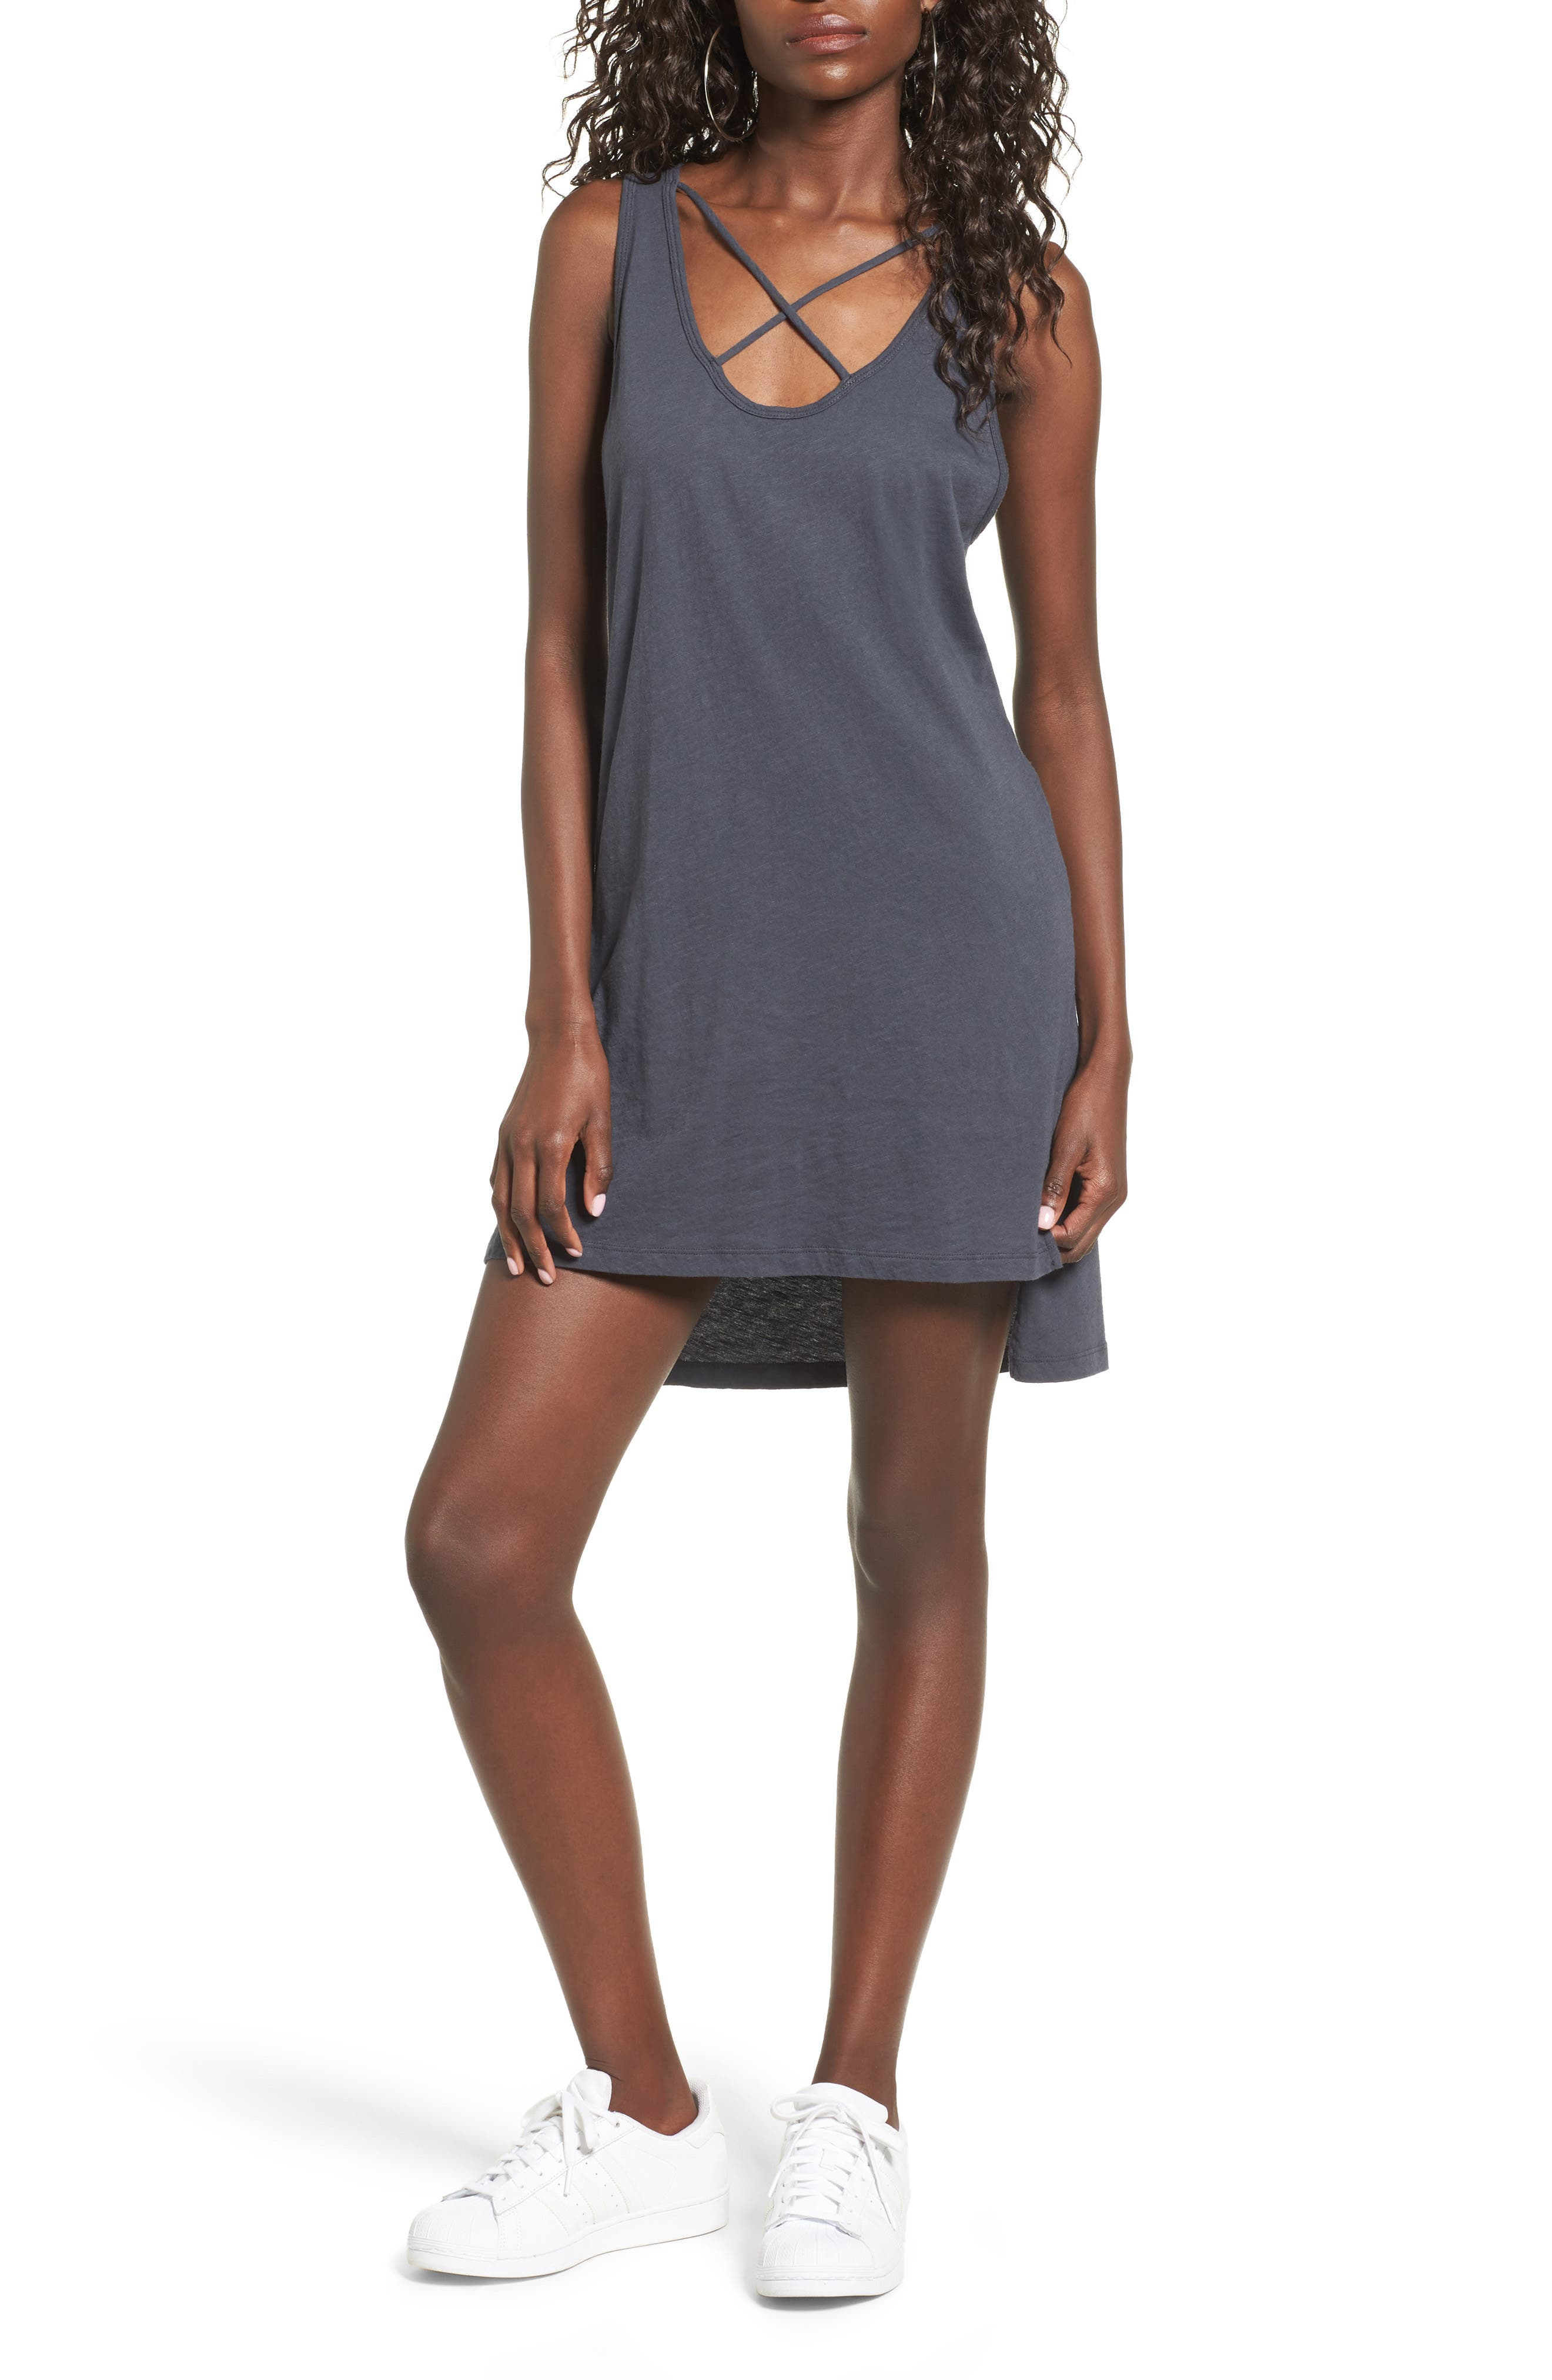 Main Image - LNA Cross Strap Tank Dress